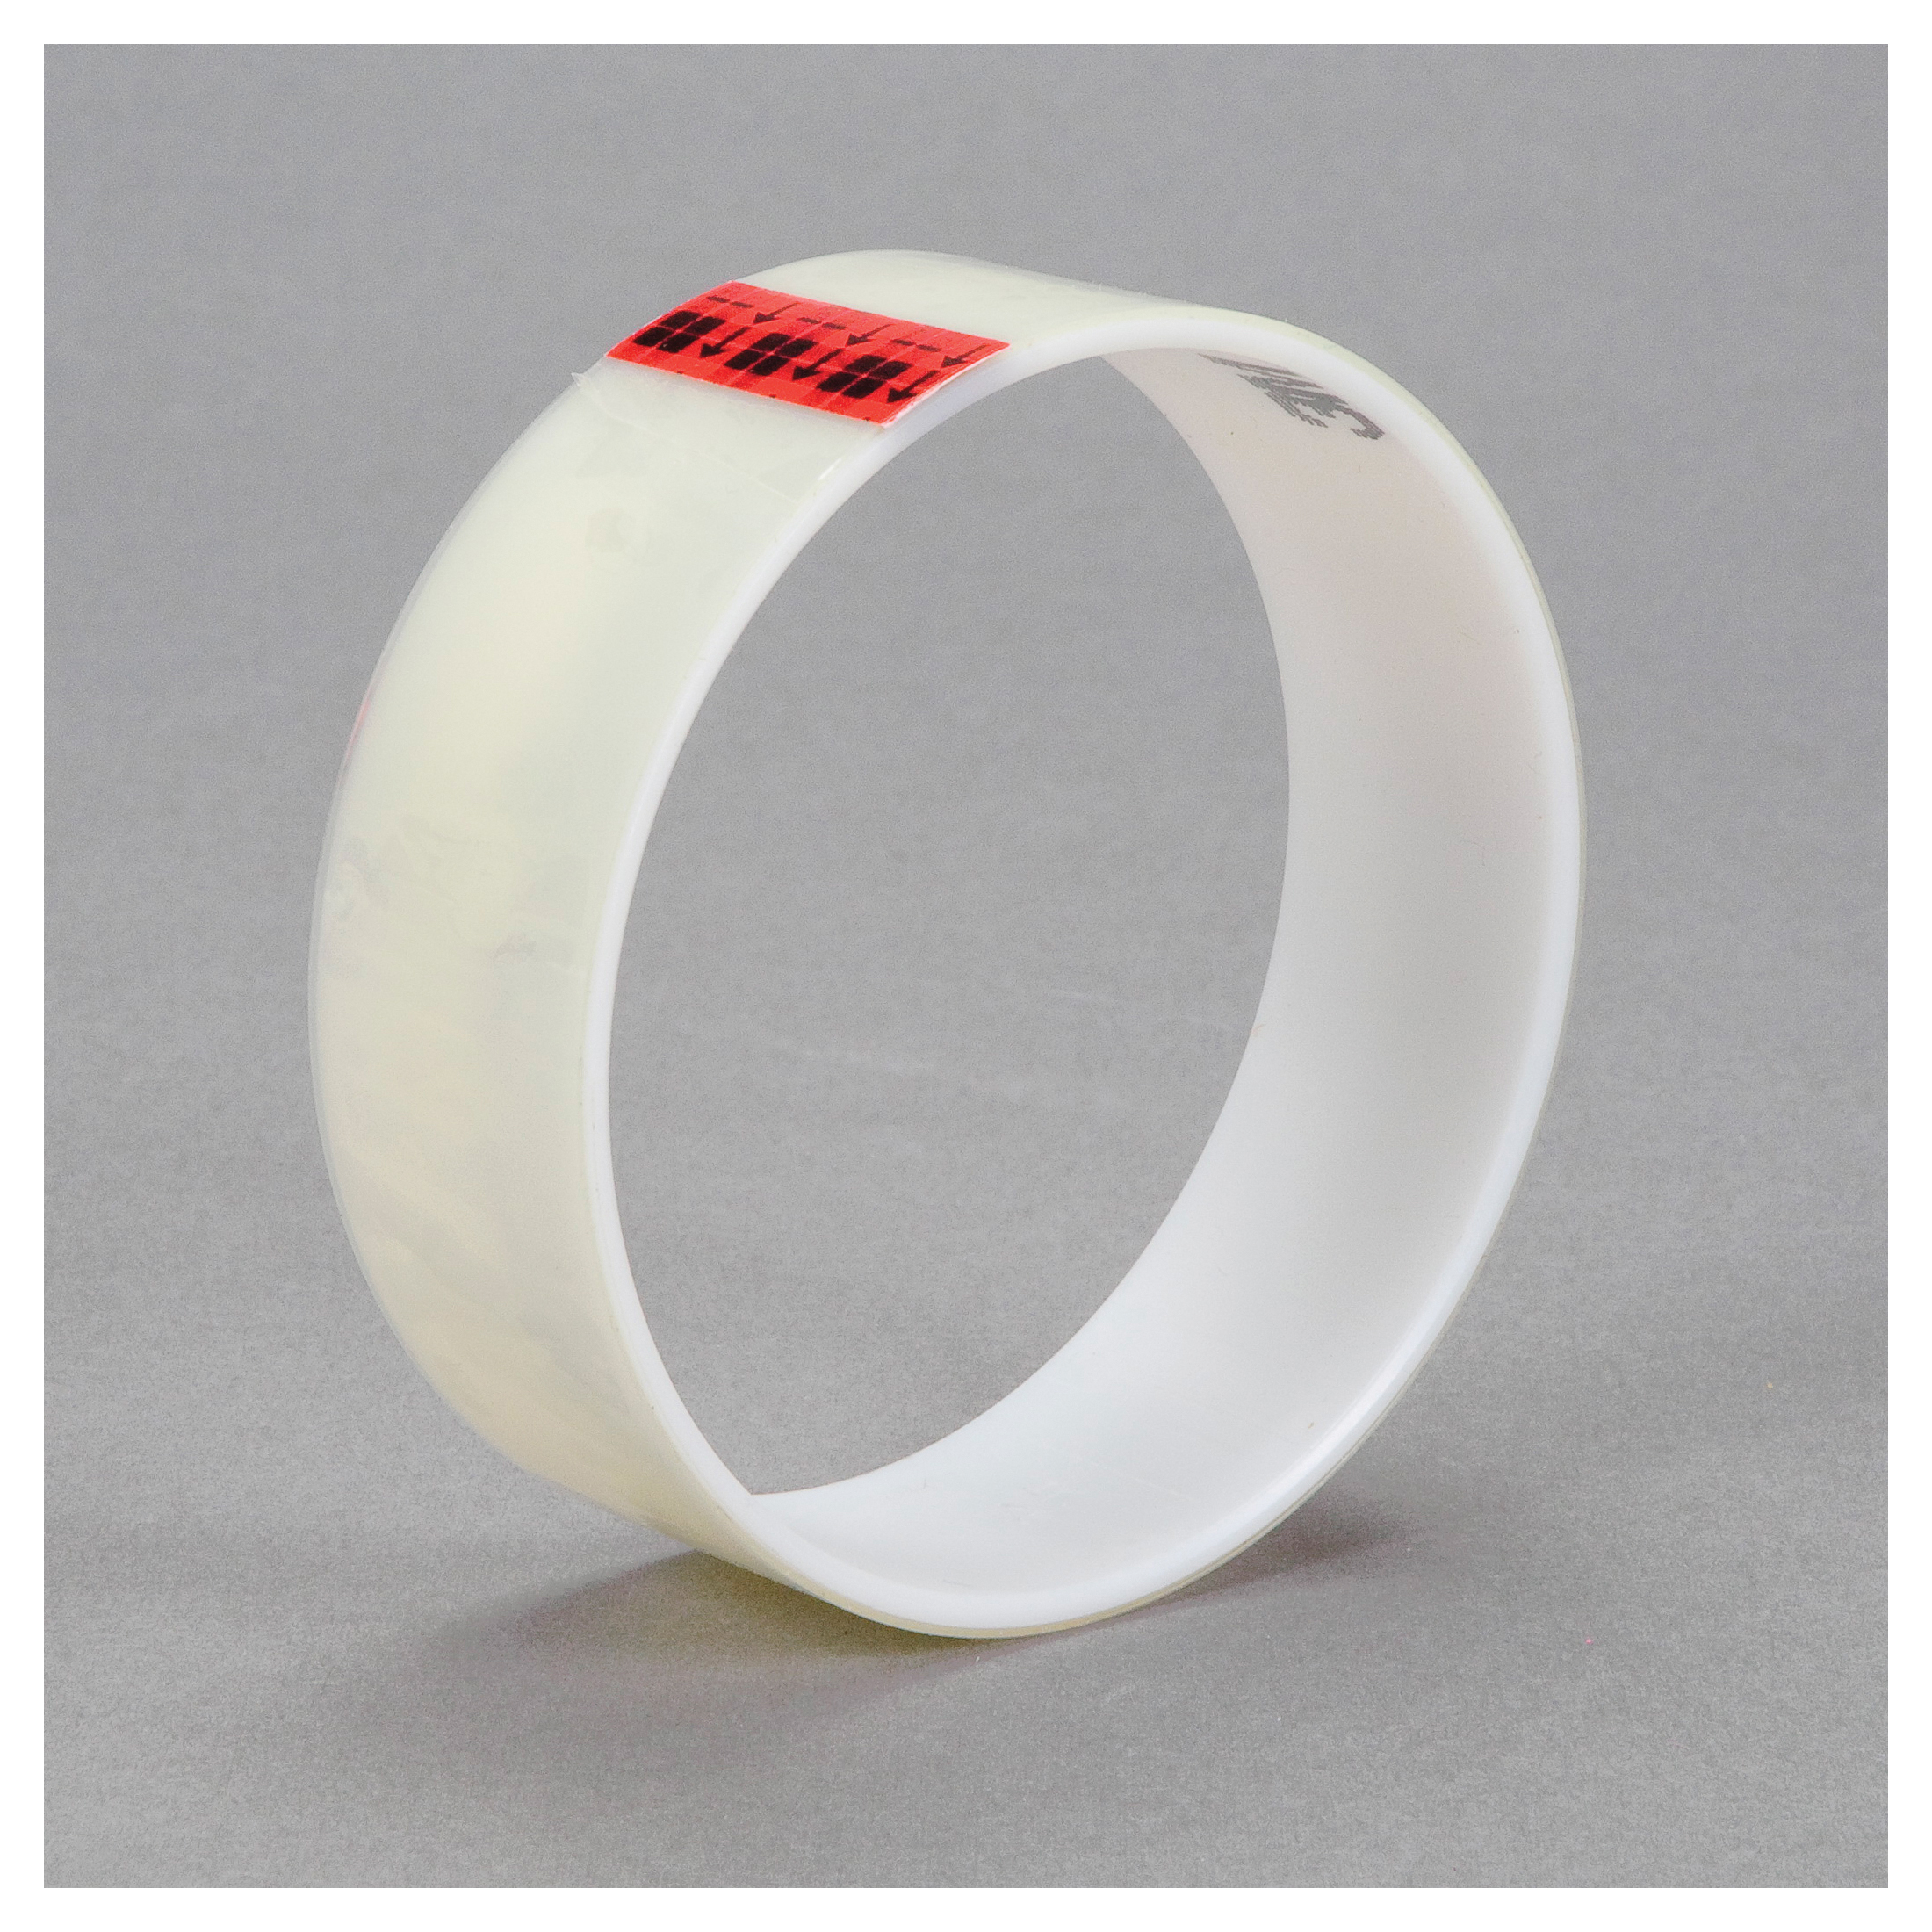 3M™ 021200-03589 Film Tape, 72 yd L x 1-1/2 in W, 2.2 mil THK, Acrylic Adhesive, 0.9 mil Polyester Backing, Transparent